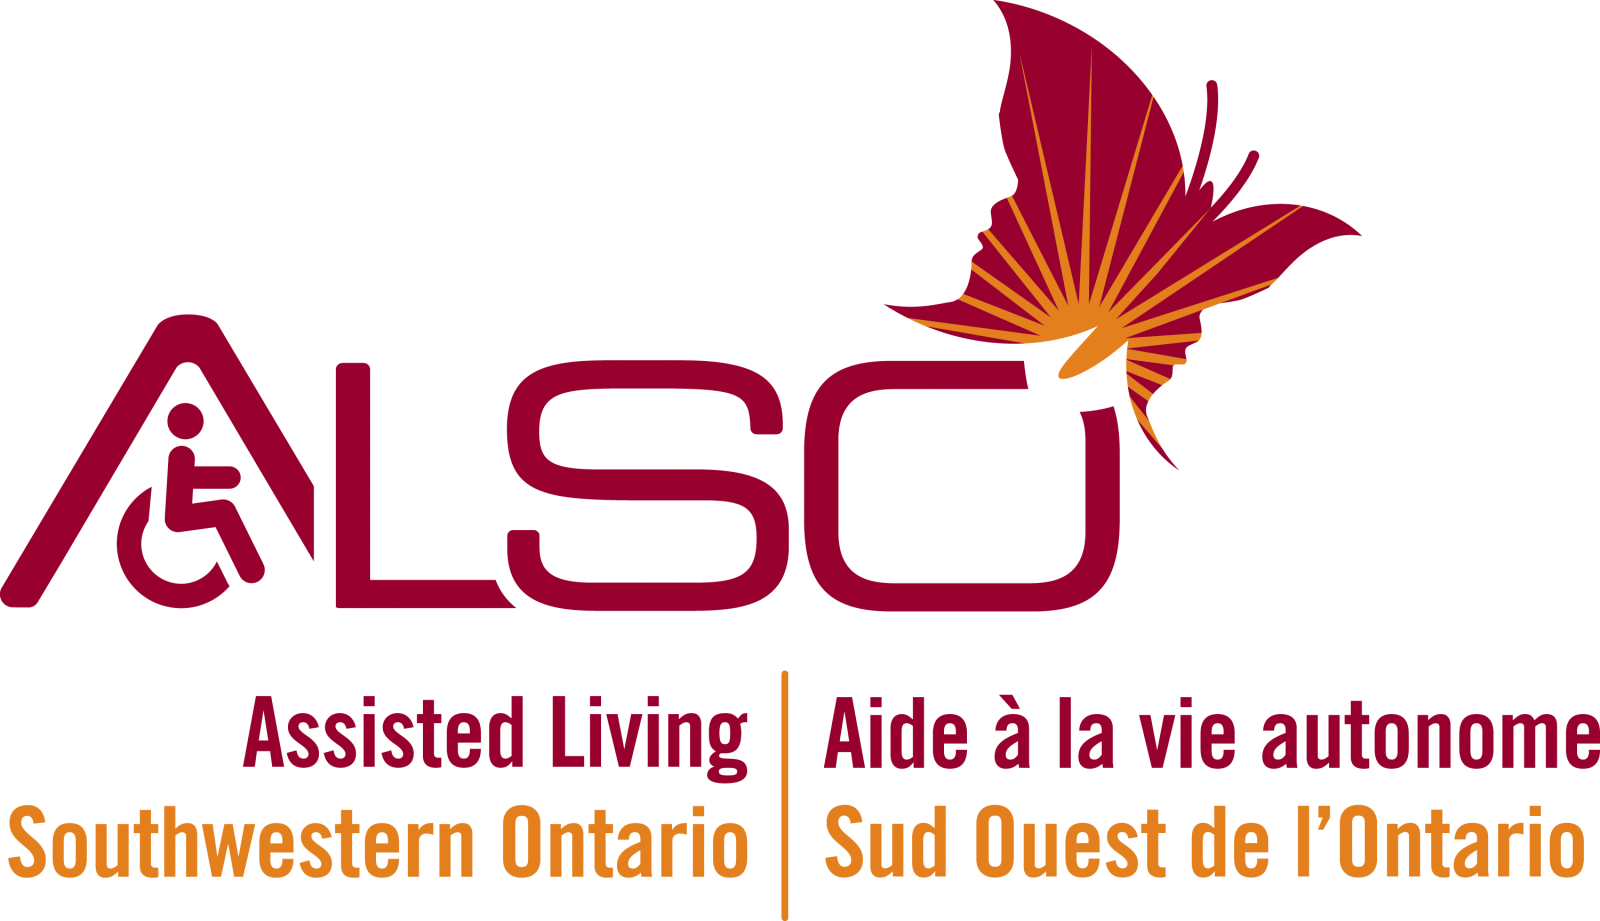 Assisted Living Southwestern Ontario